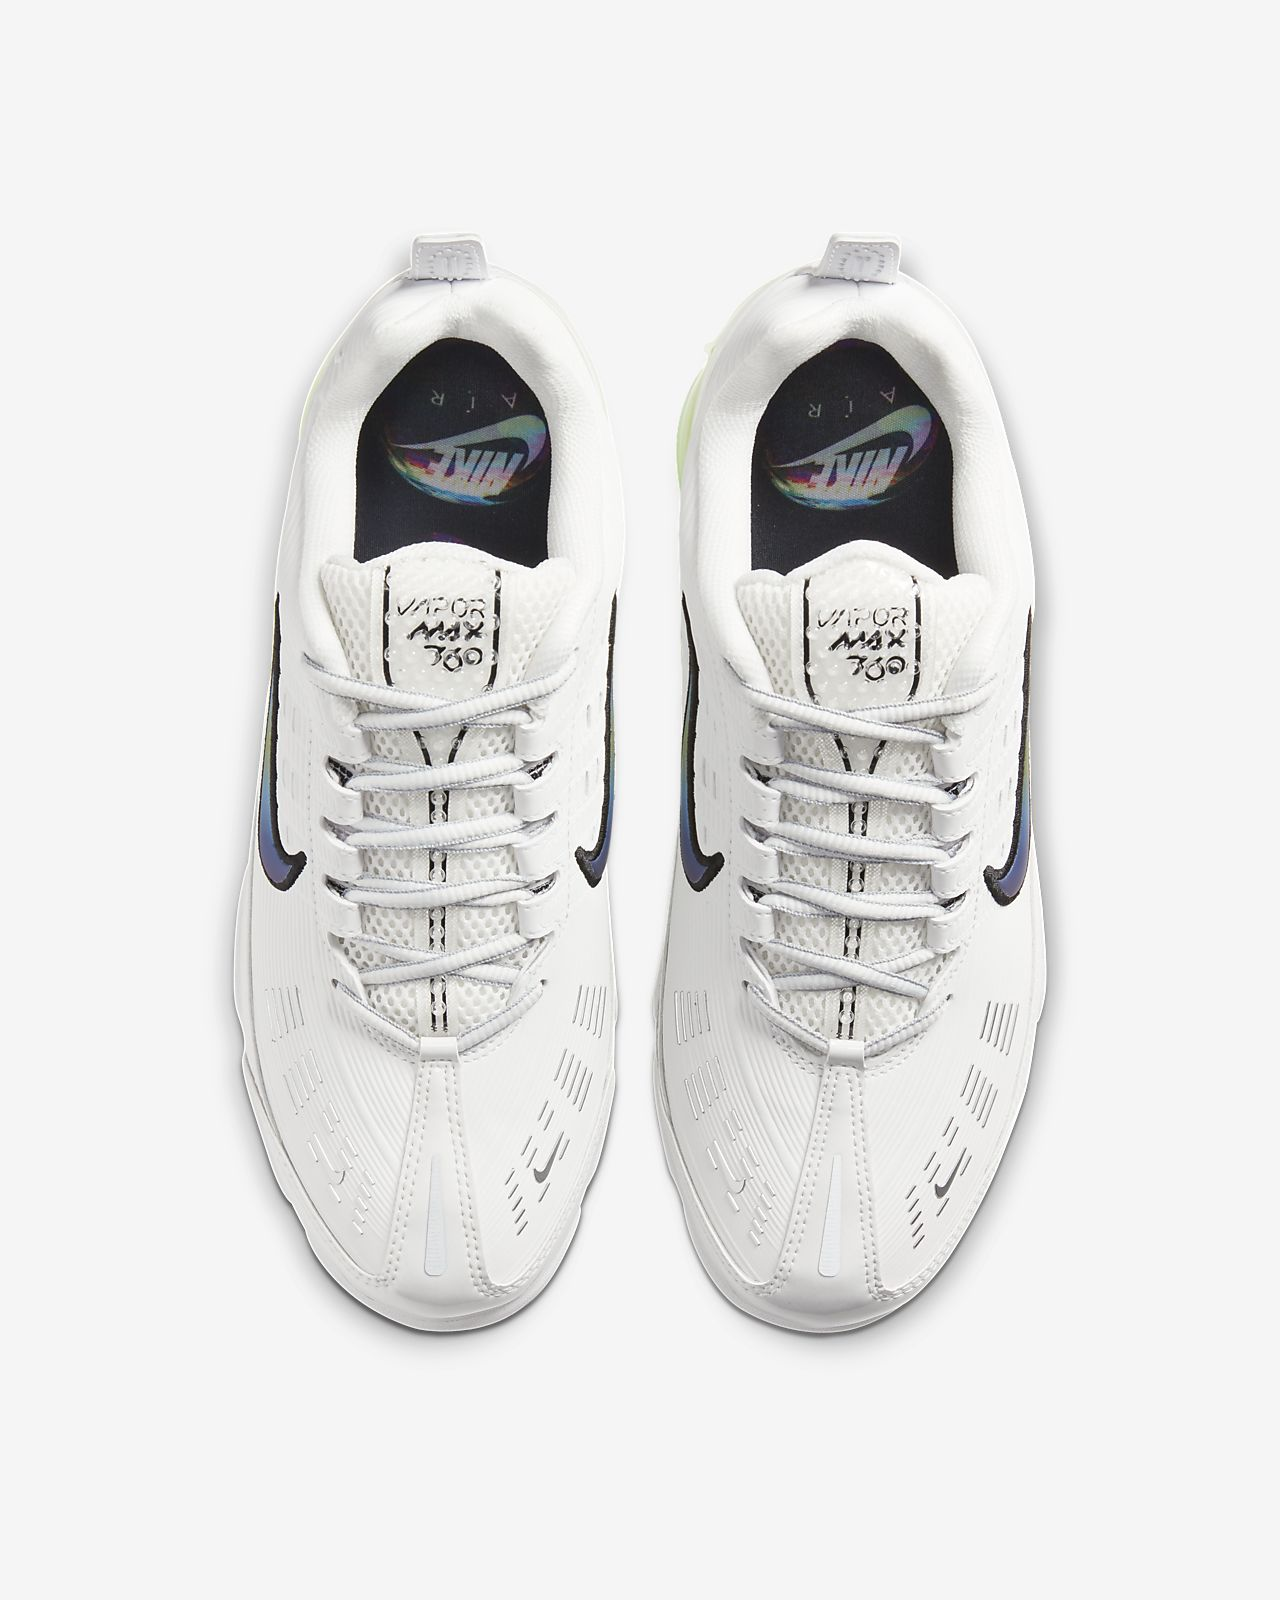 Chaussure Personnalisable Nike Air Max 200 By You Pour Homme Blanc from Nike on 21 Buttons